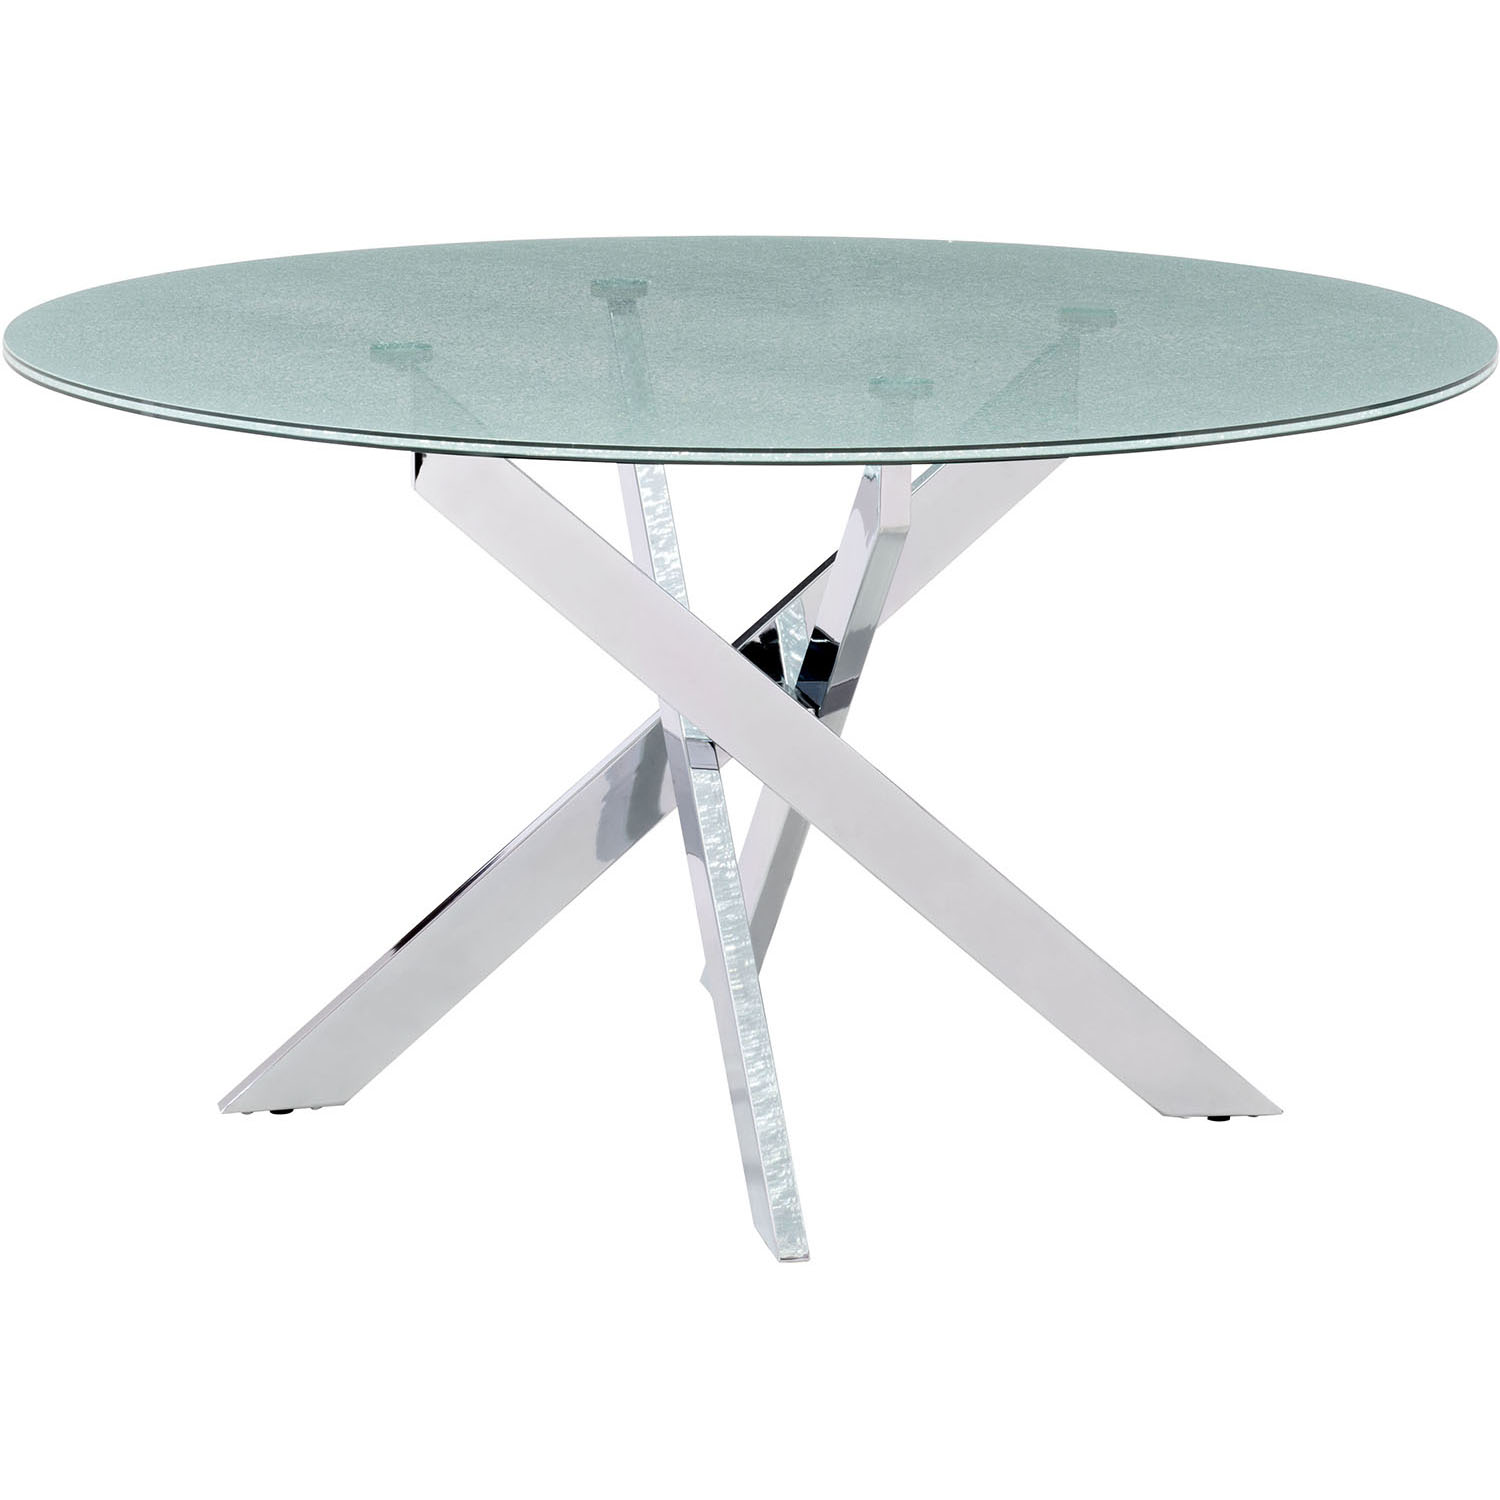 Unique Modern Stance Crackled Glass Dining Table Product Photo